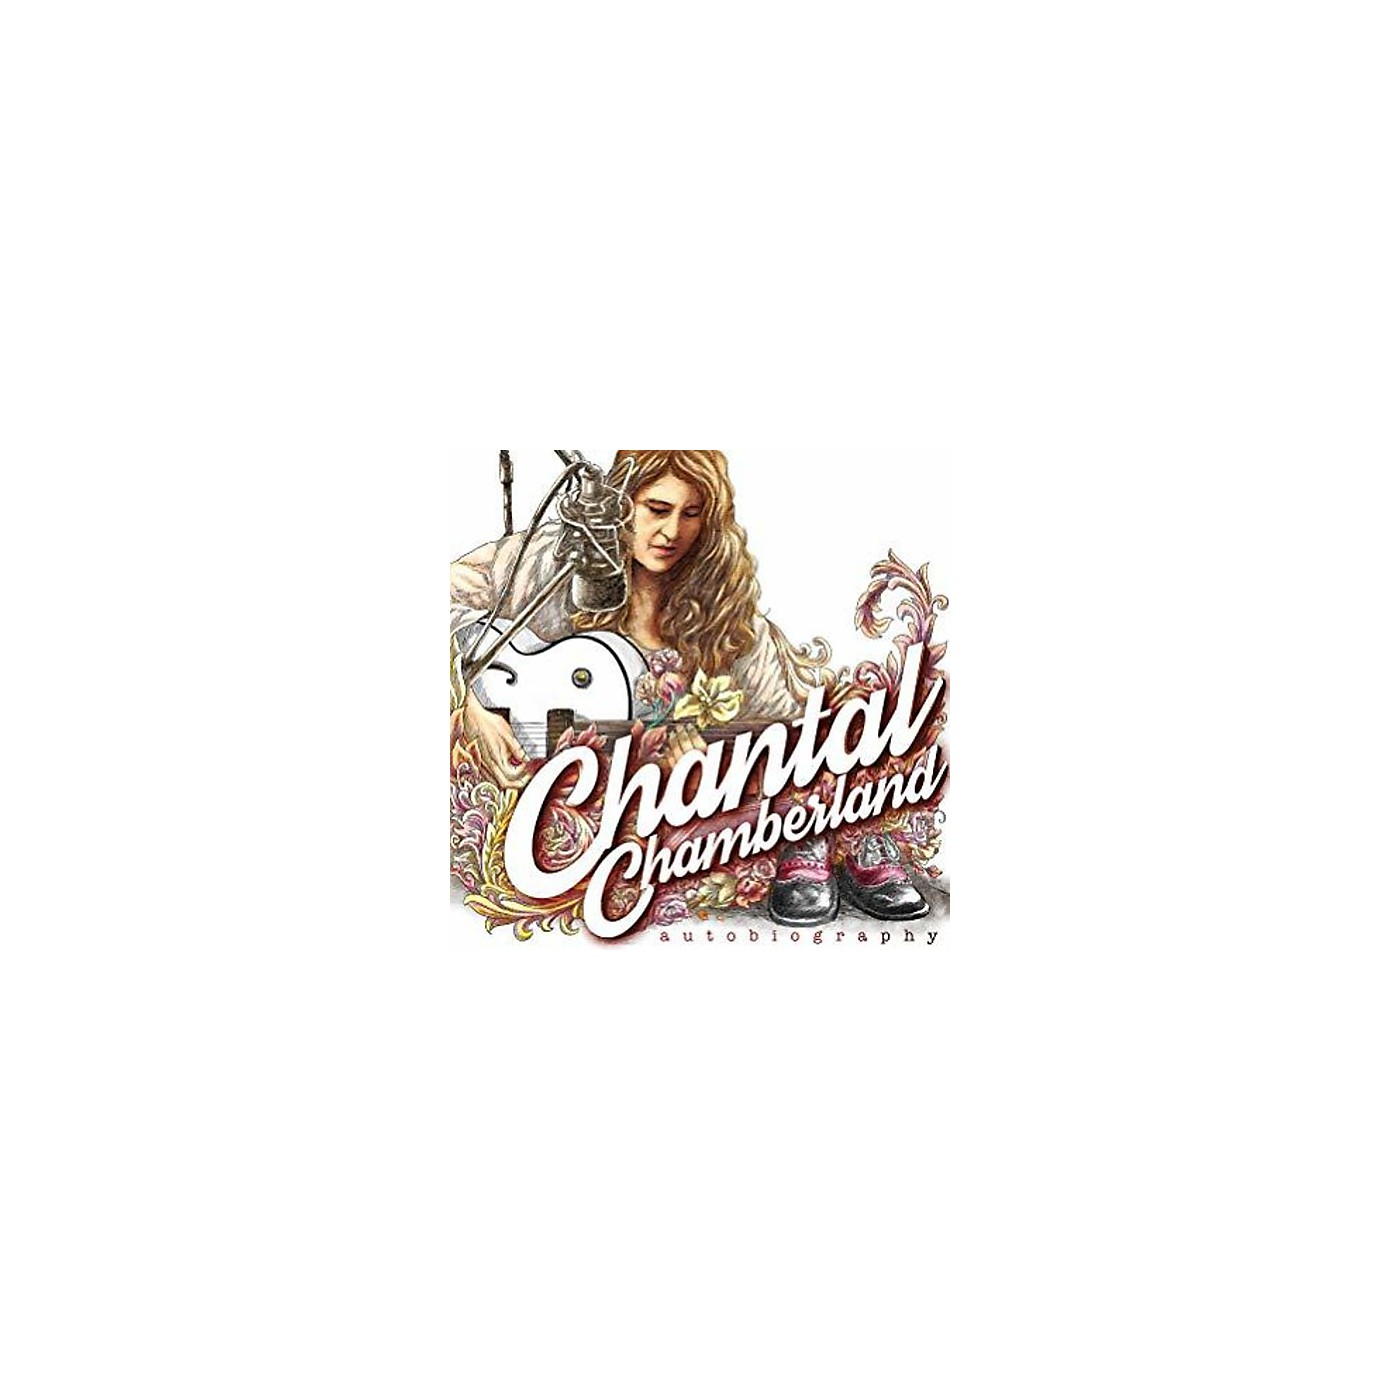 Alliance Chantal Chamberland - Autobiography thumbnail